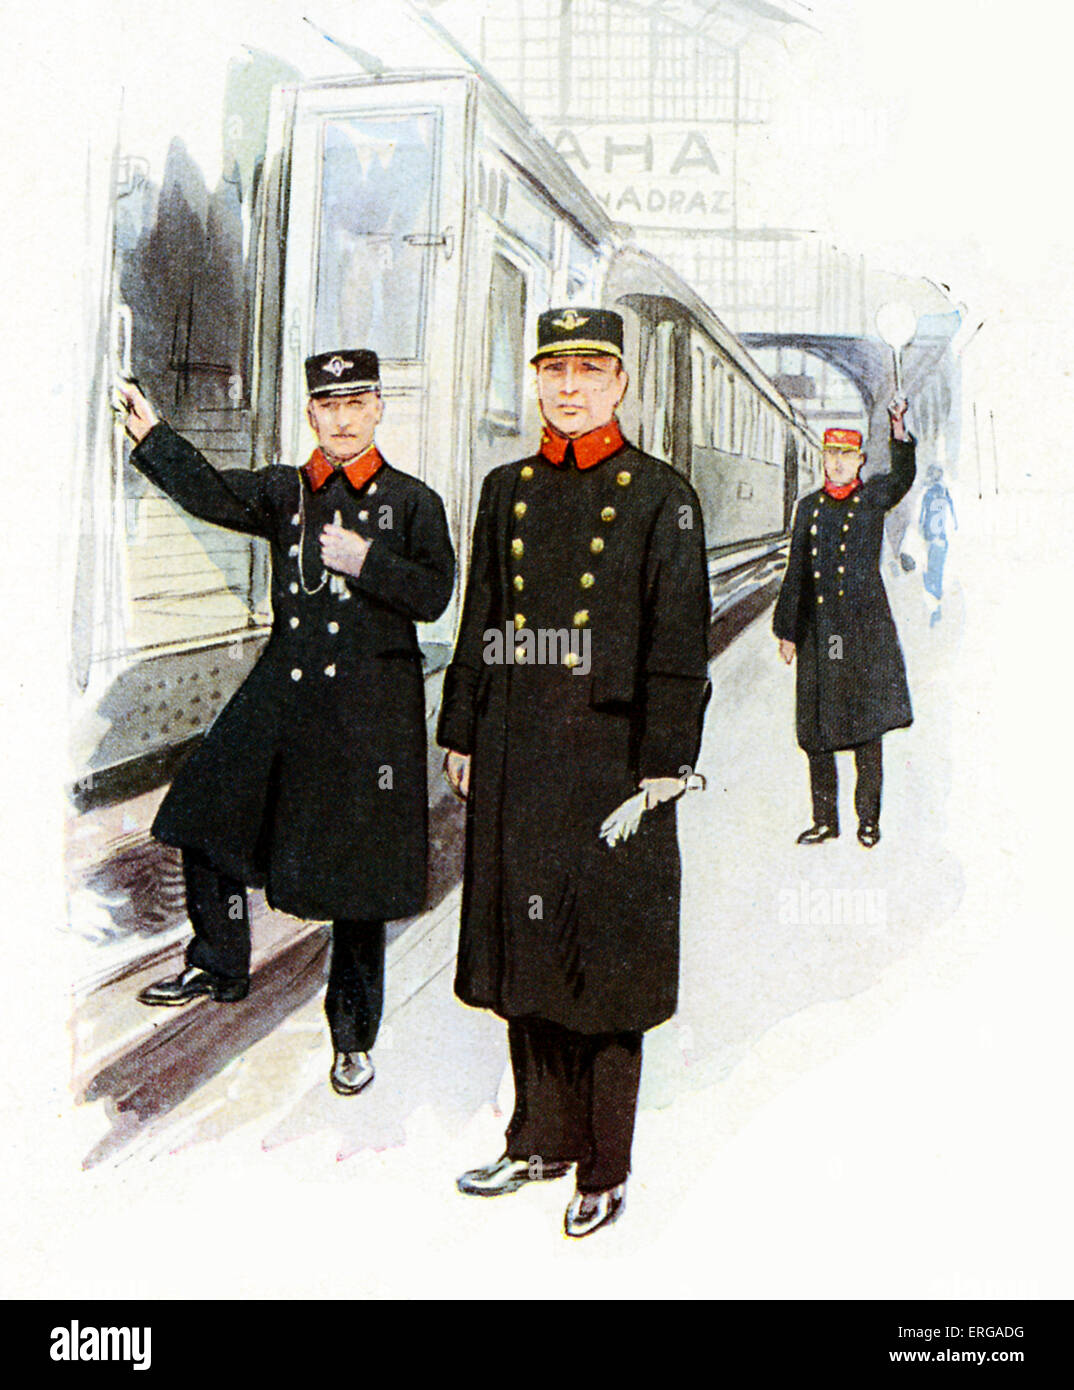 Railway staff uniforms, 1920-30s: Czechoslovakian railway station master, conductor and signaller. - Stock Image